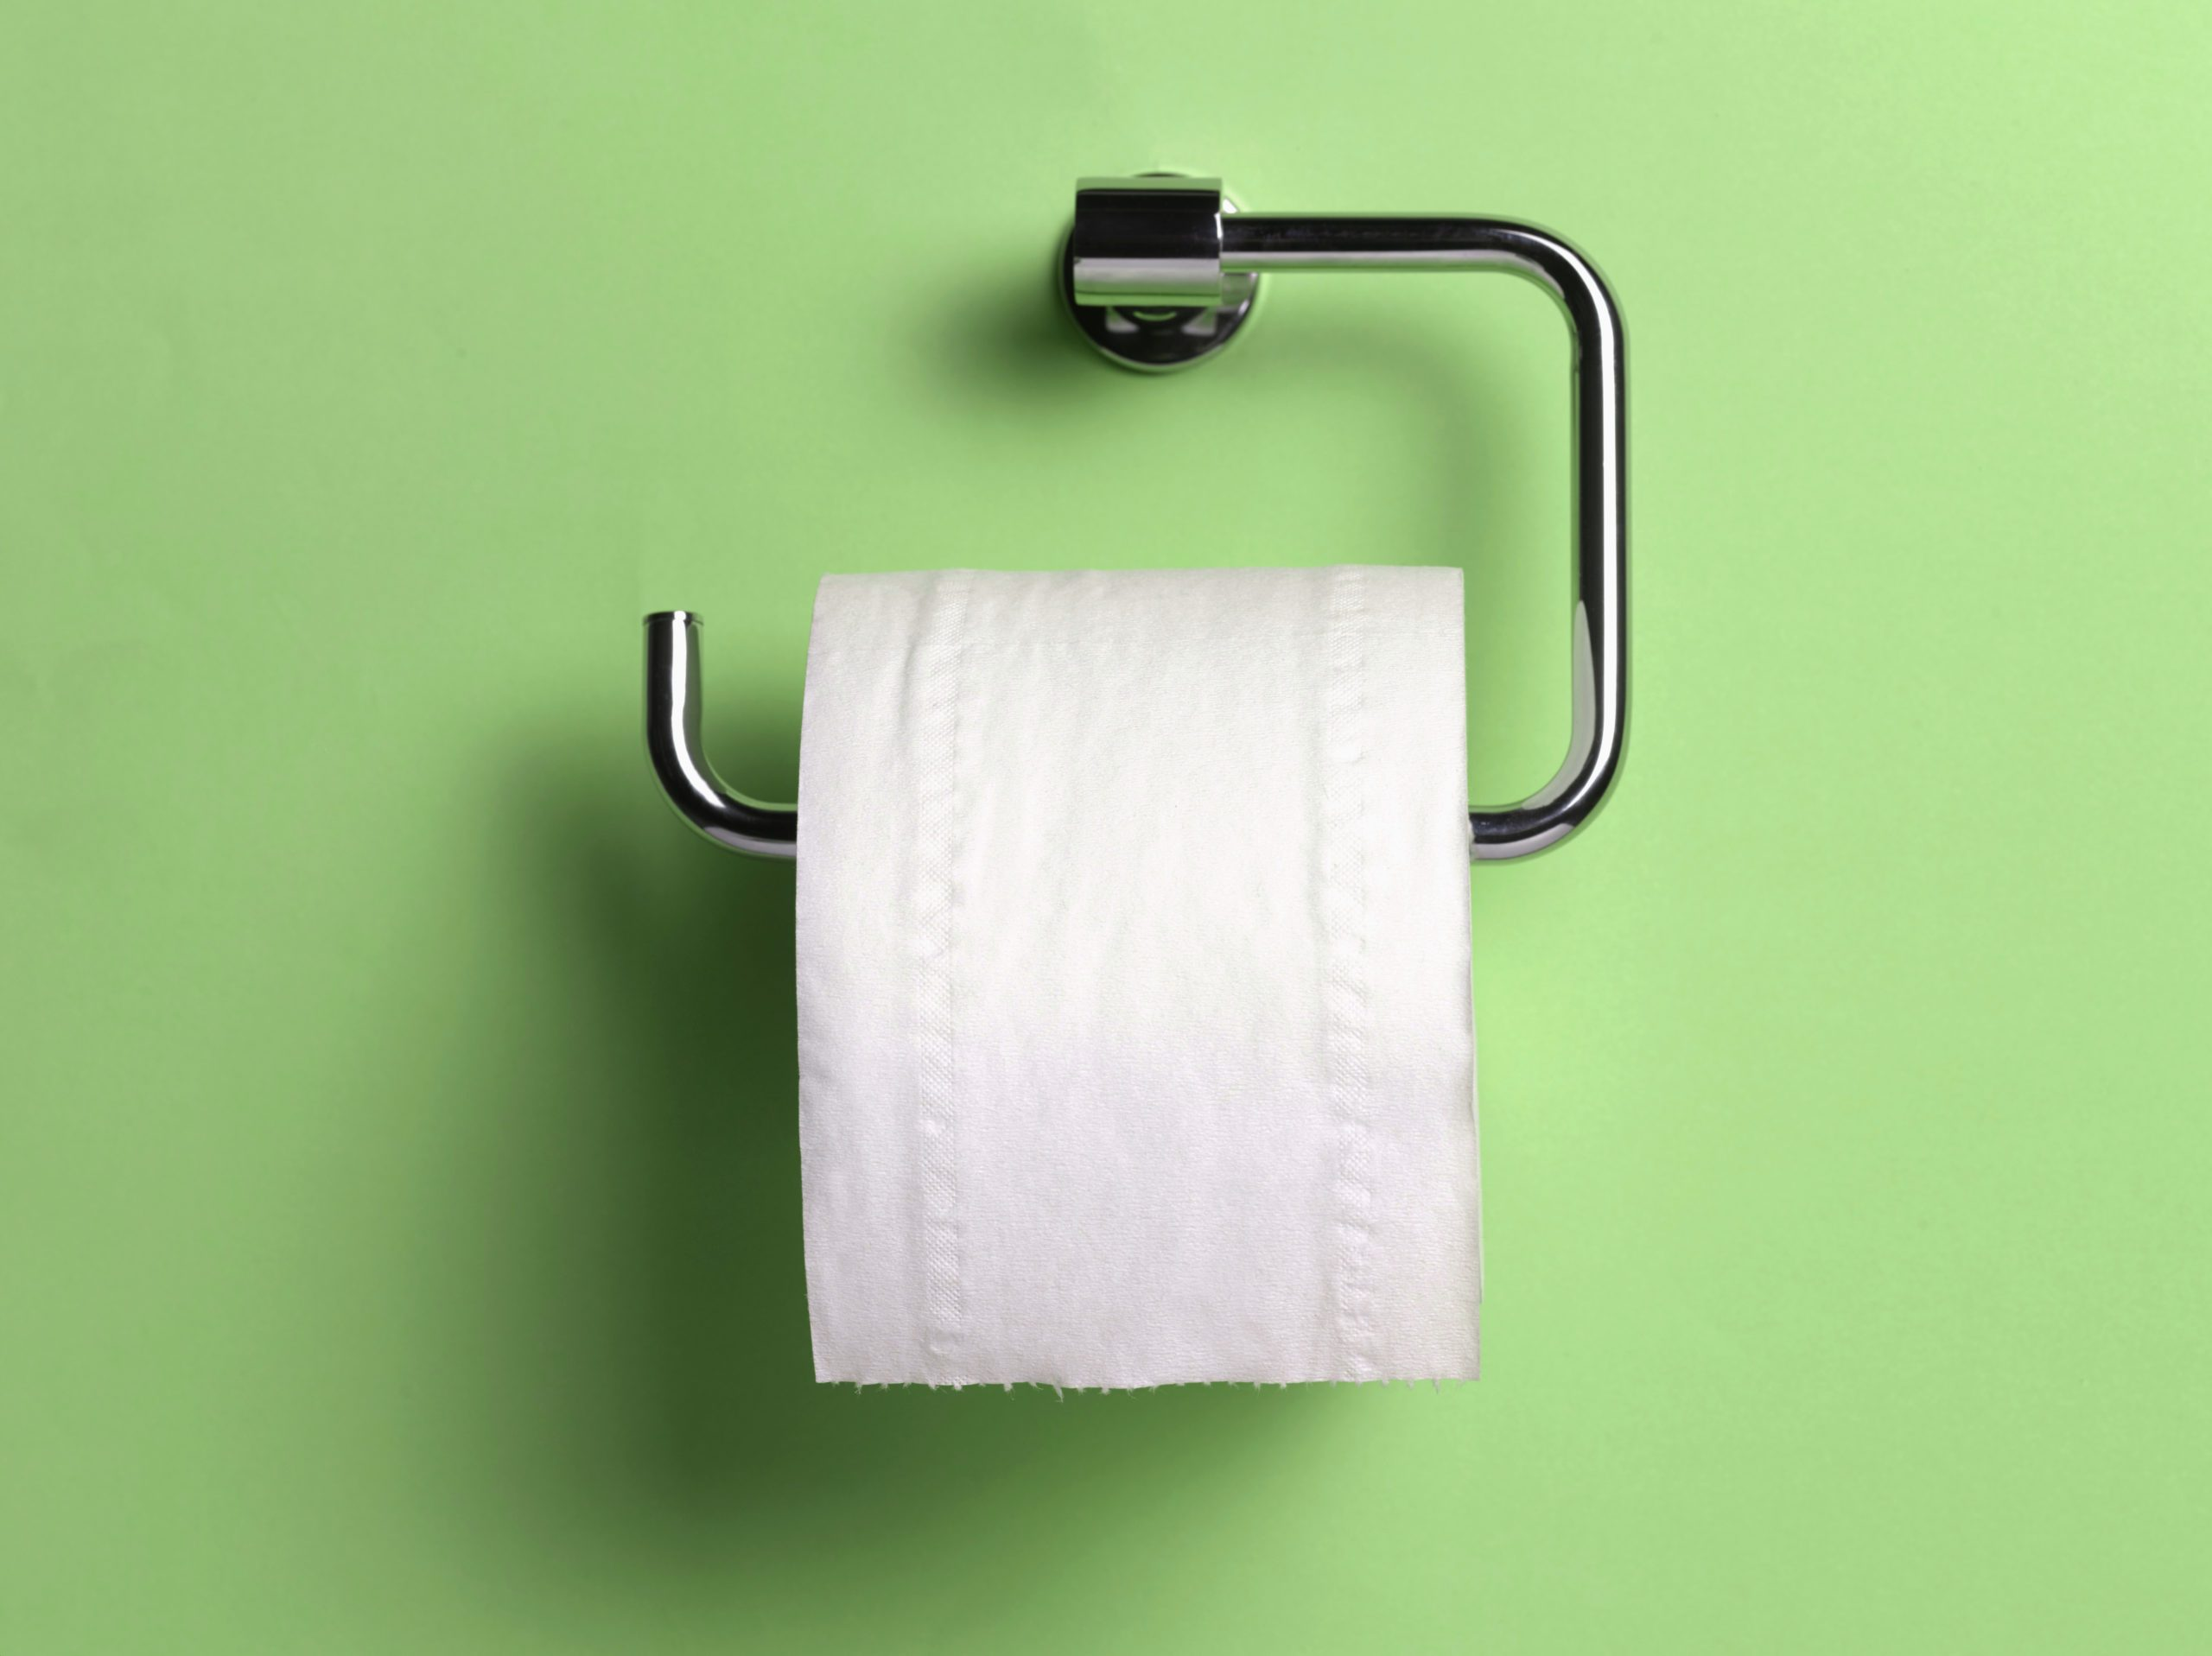 toilet paper holder on green background